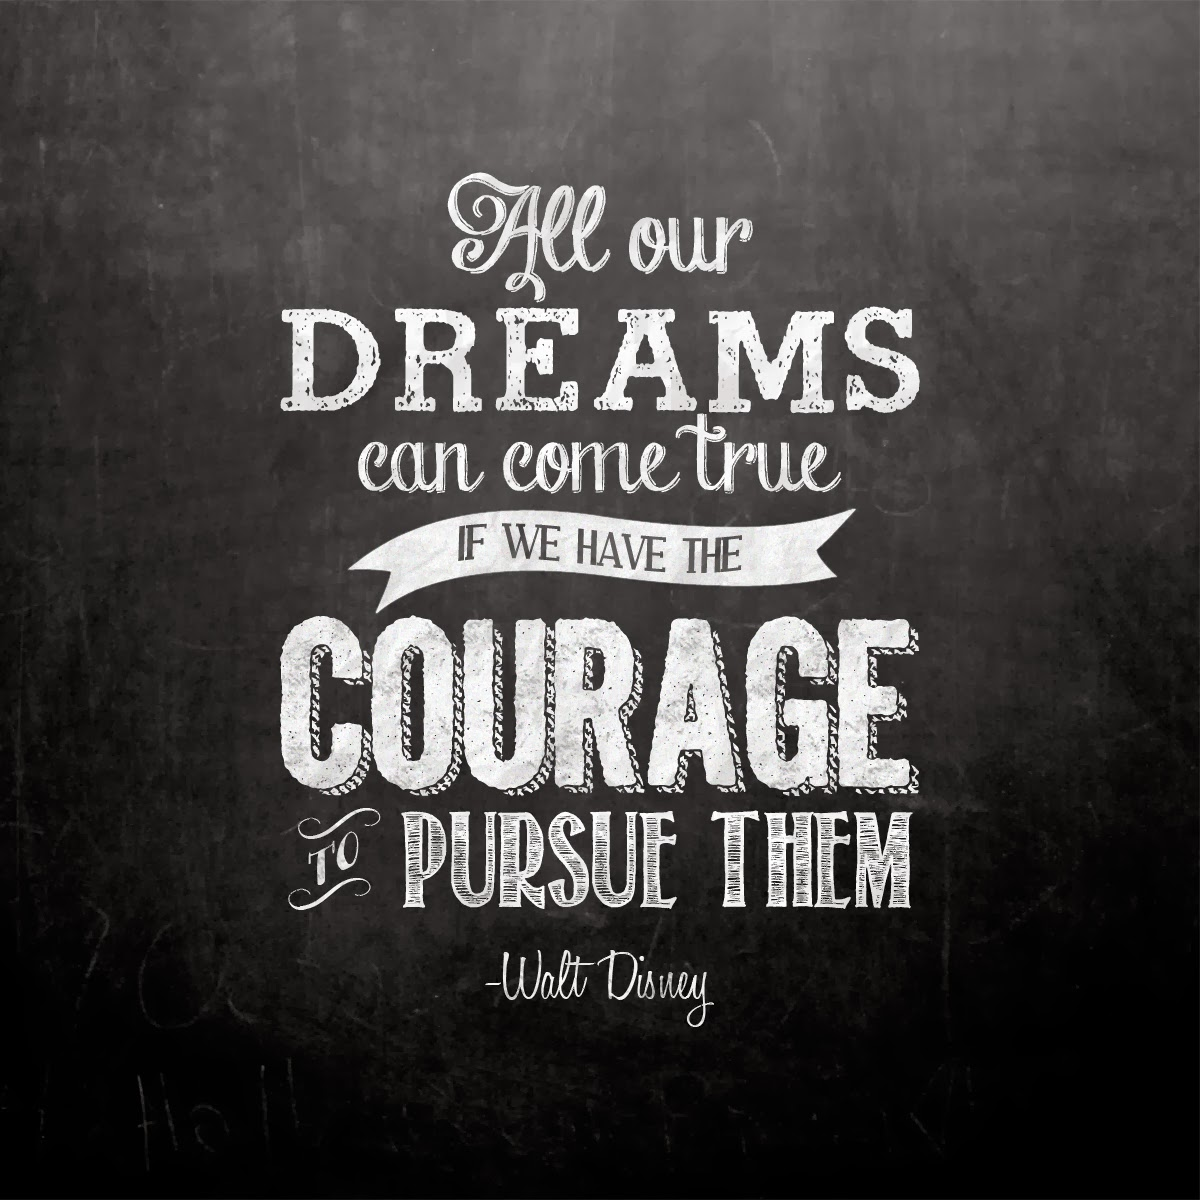 Inspirational Walt Disney Quotes: Walt Disney Quotes About Dreams. QuotesGram